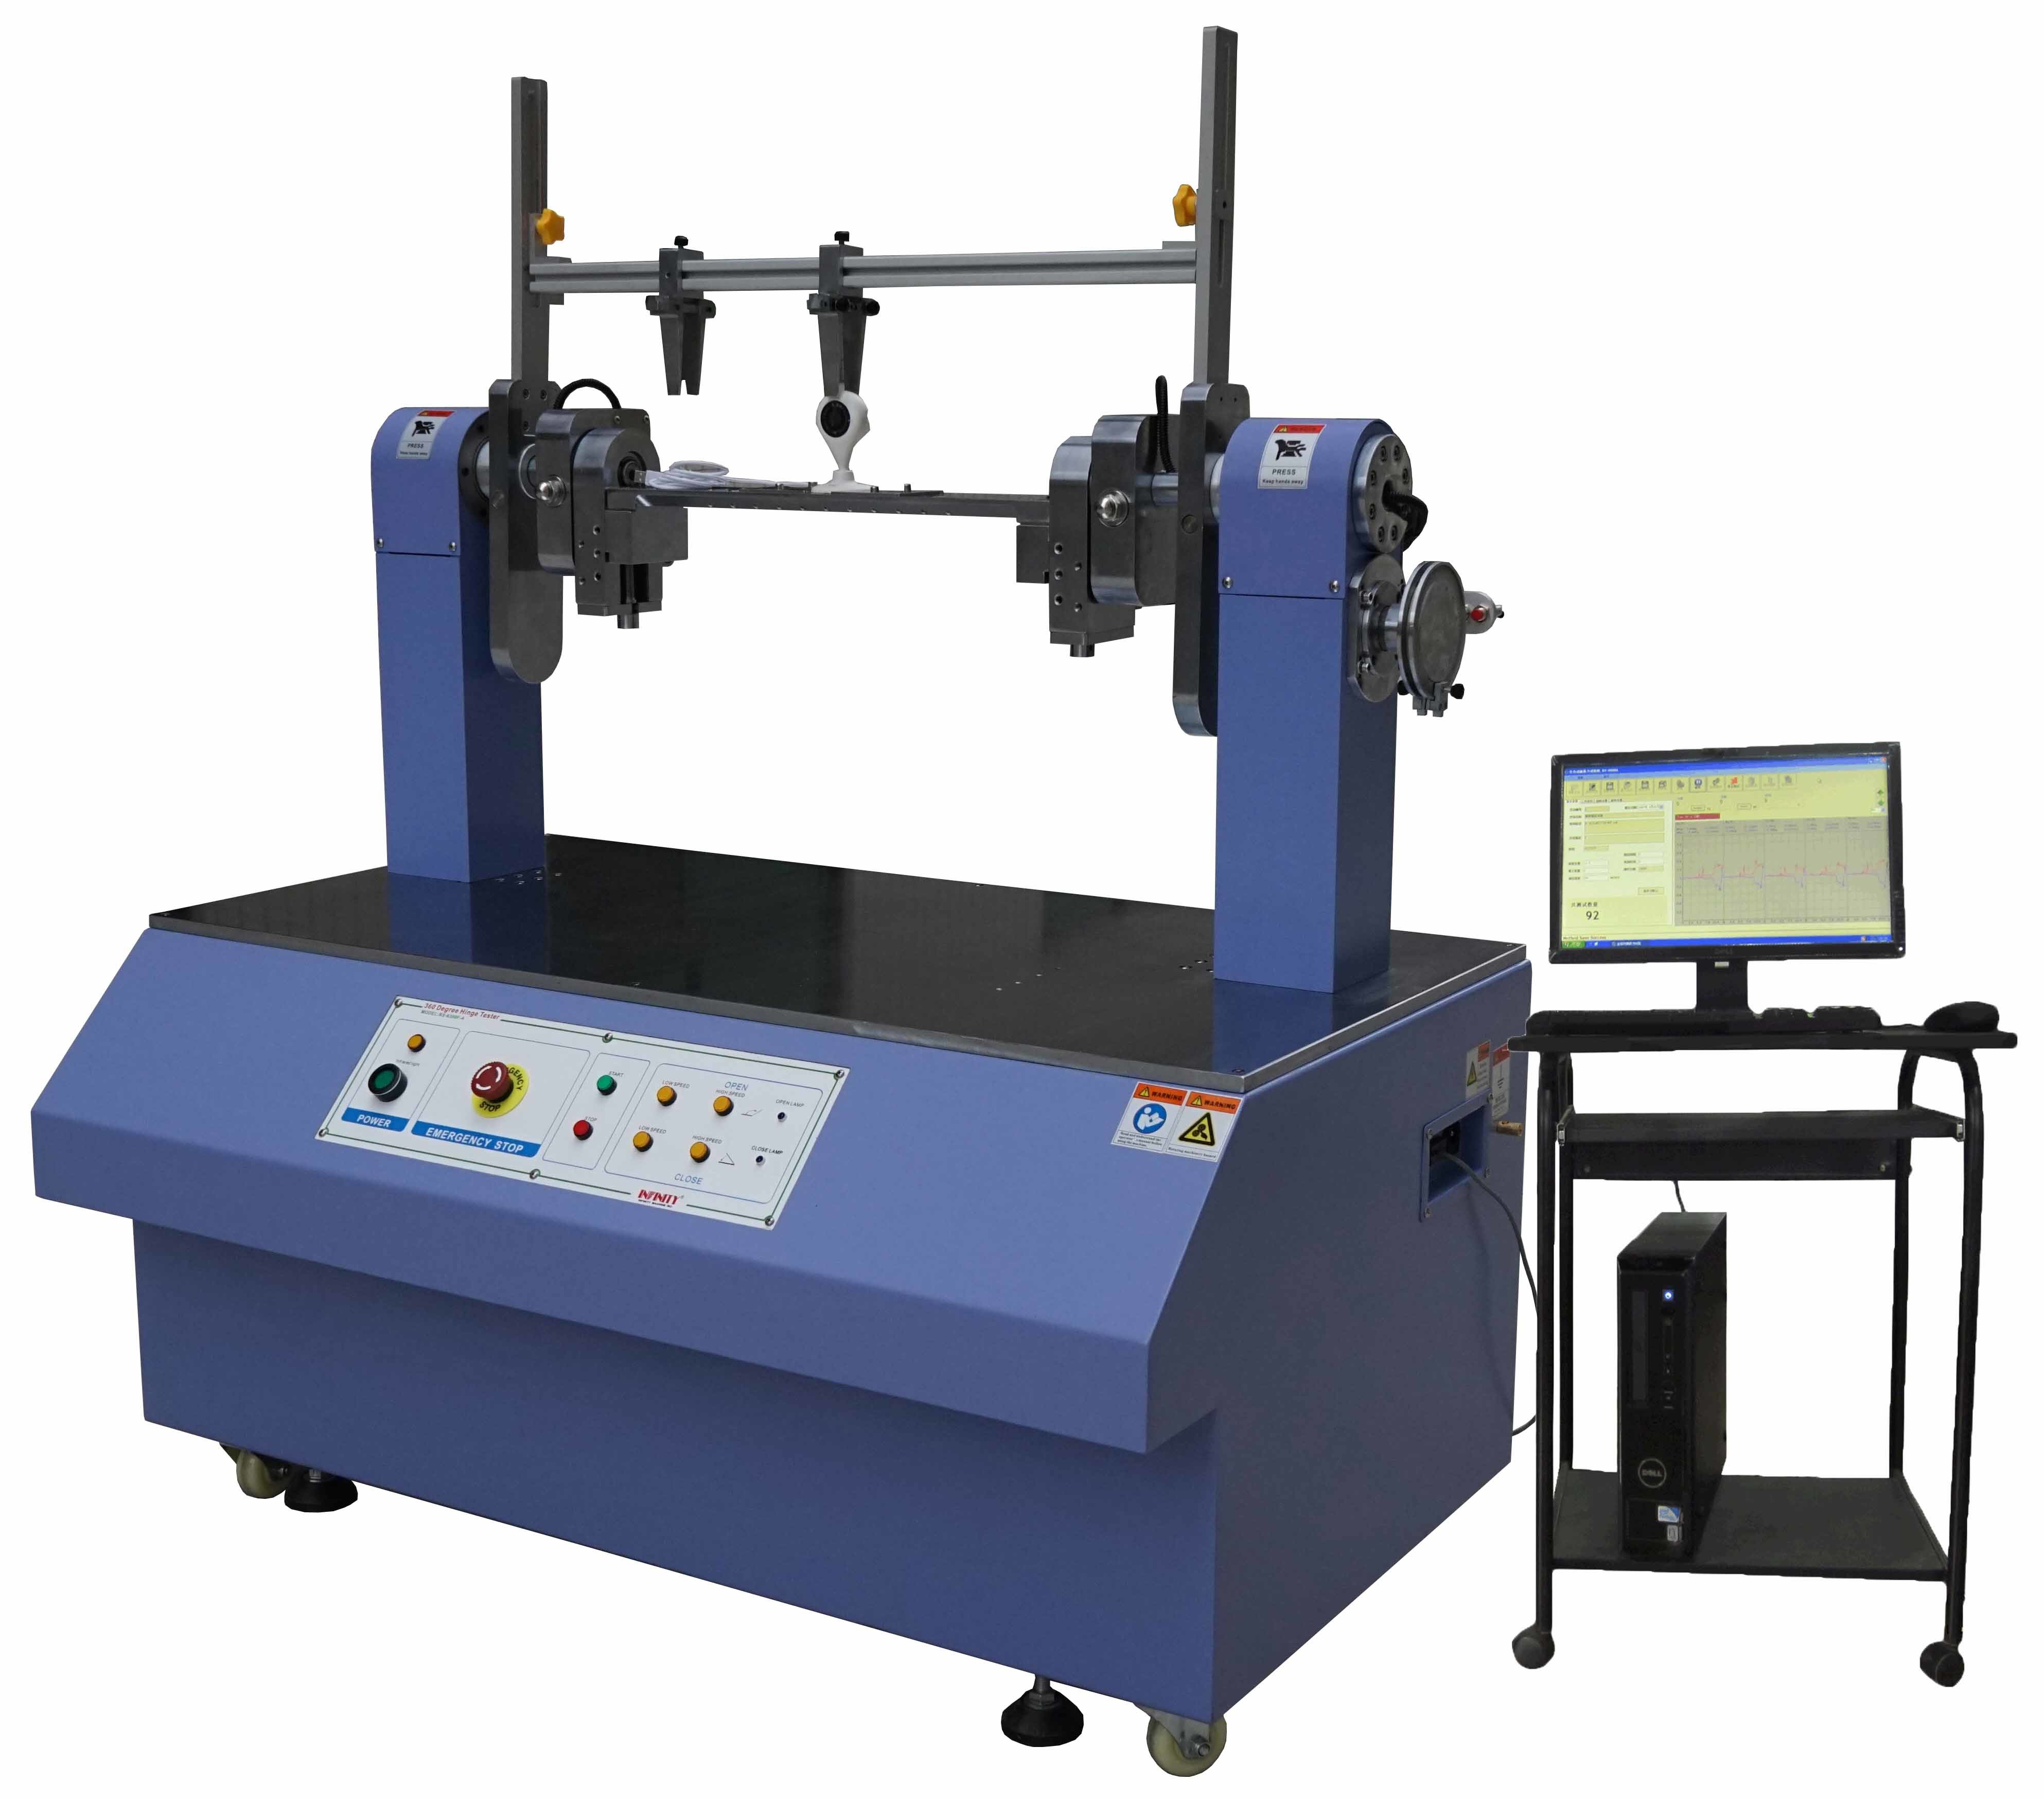 360 Degree Torsion Testing Machine 10 N.m Capacity with Axis Center Device